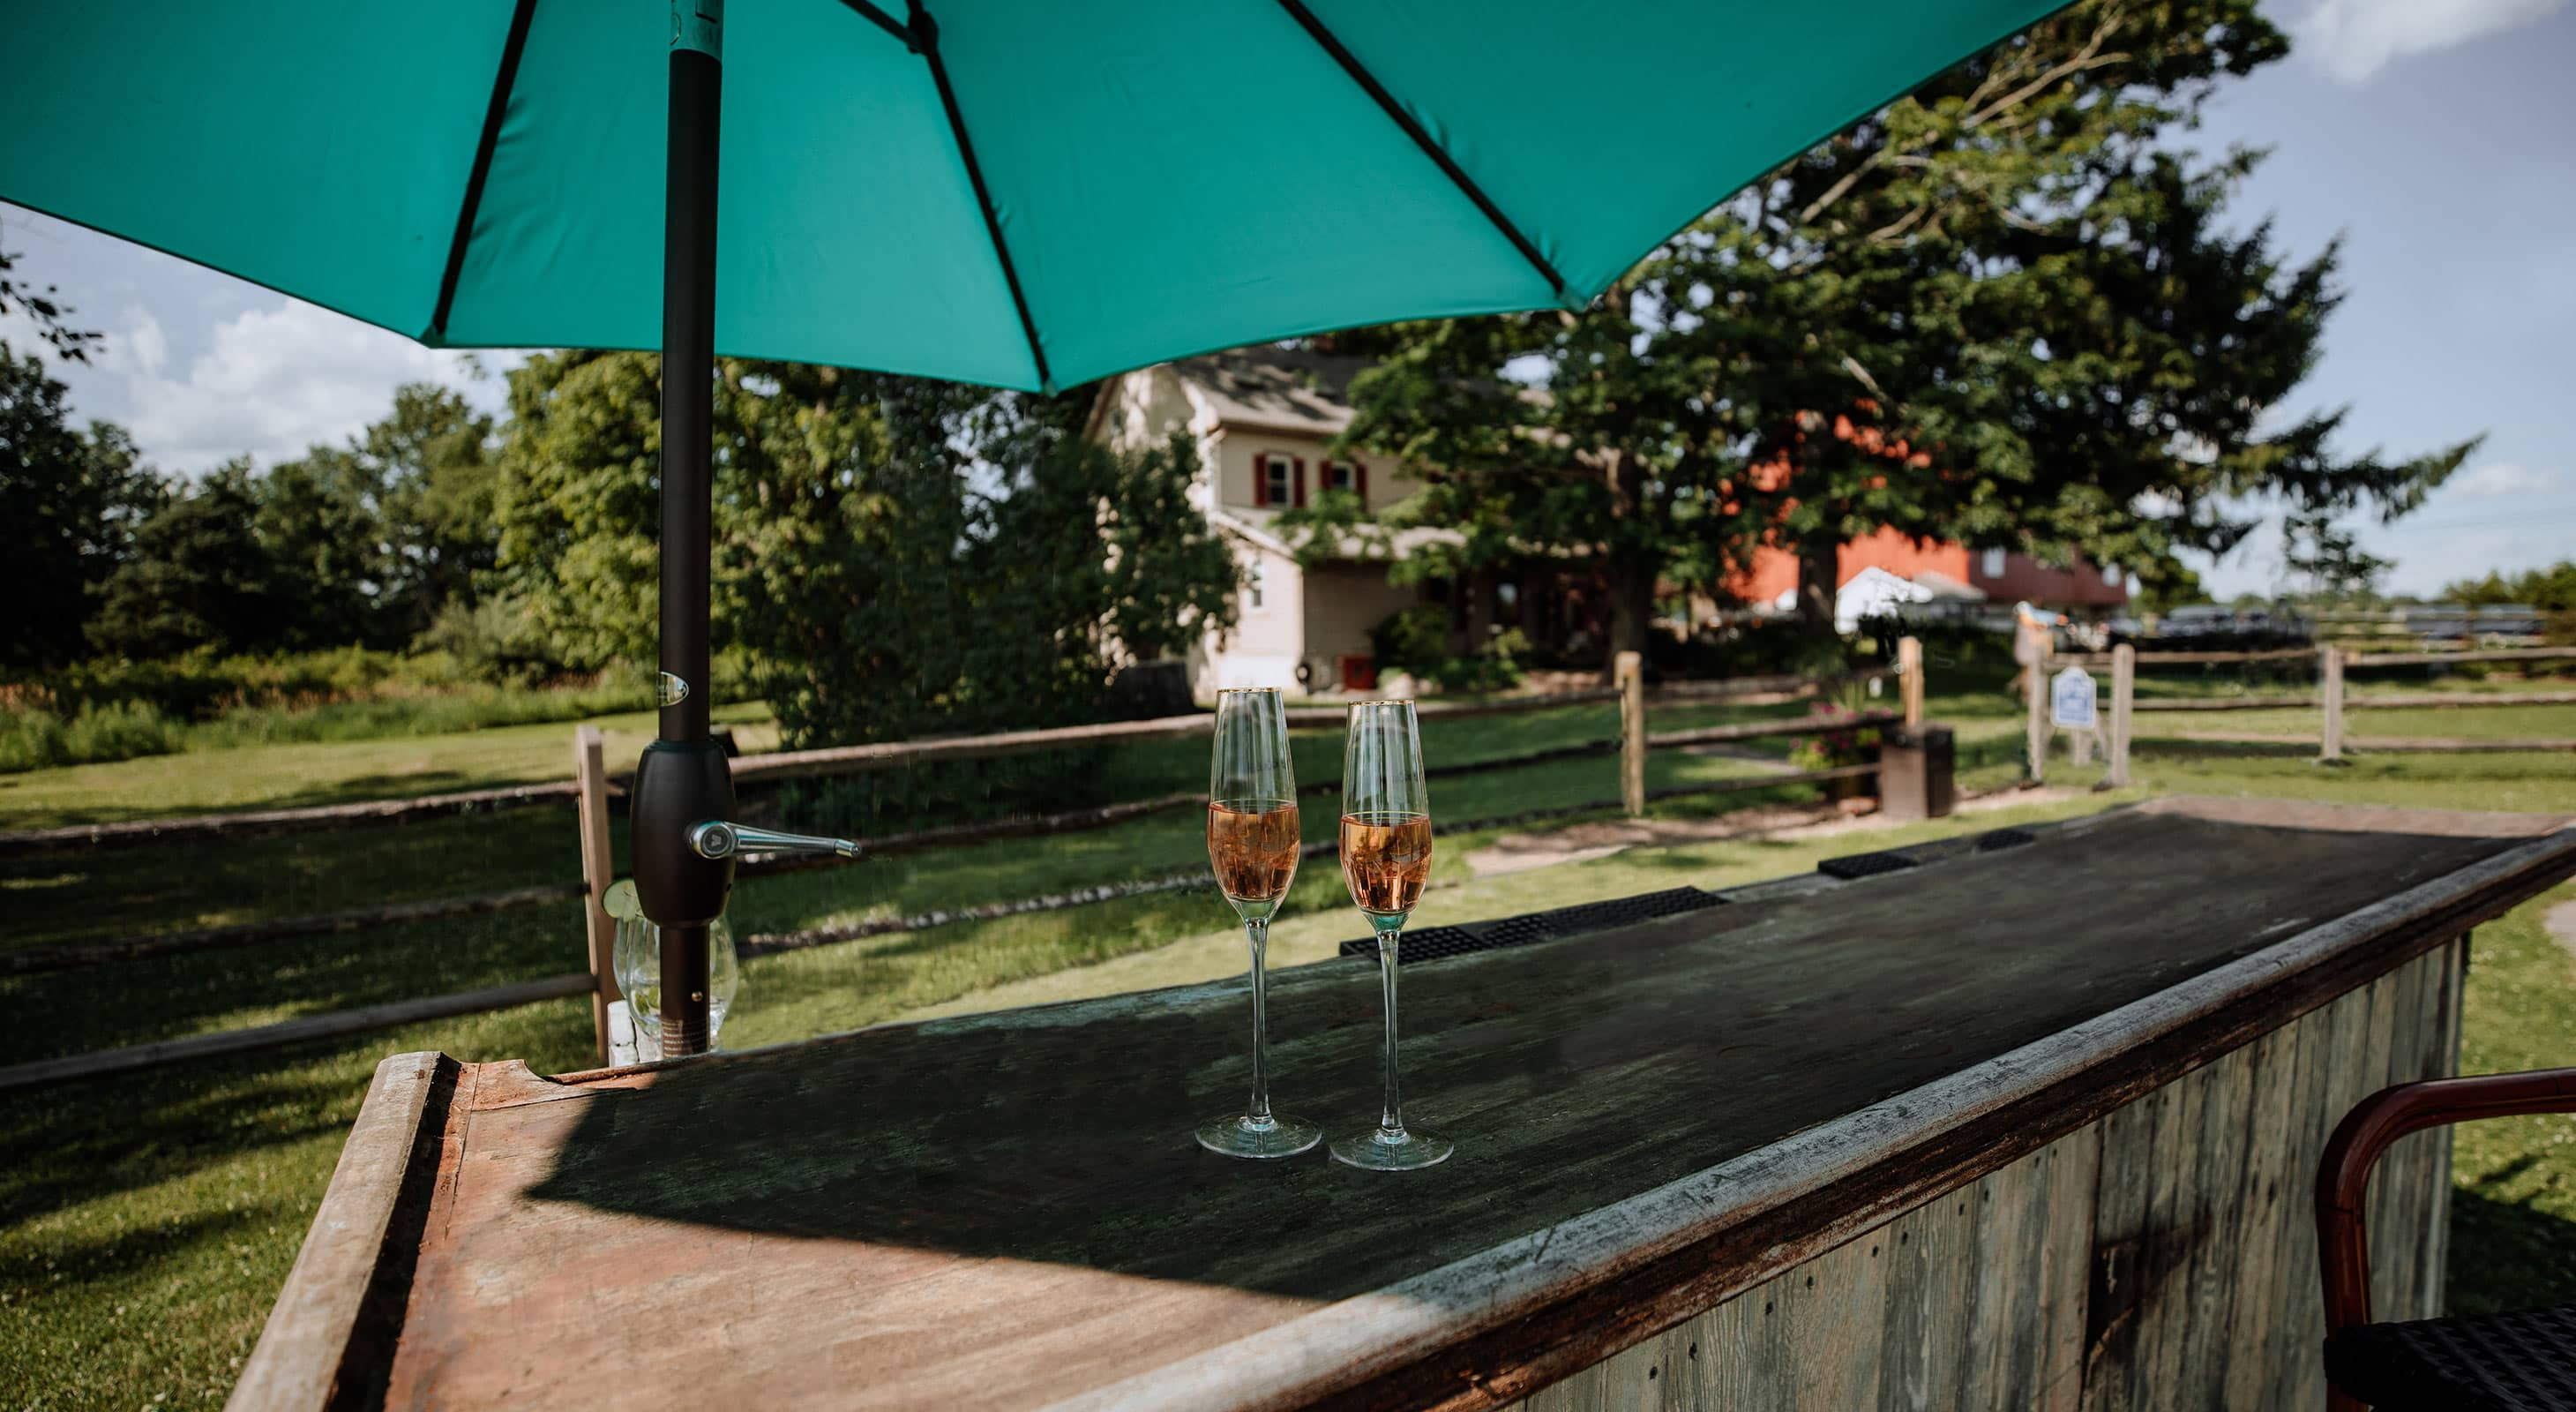 Outdoor Tiki Bar with Two Glasses of Champagne